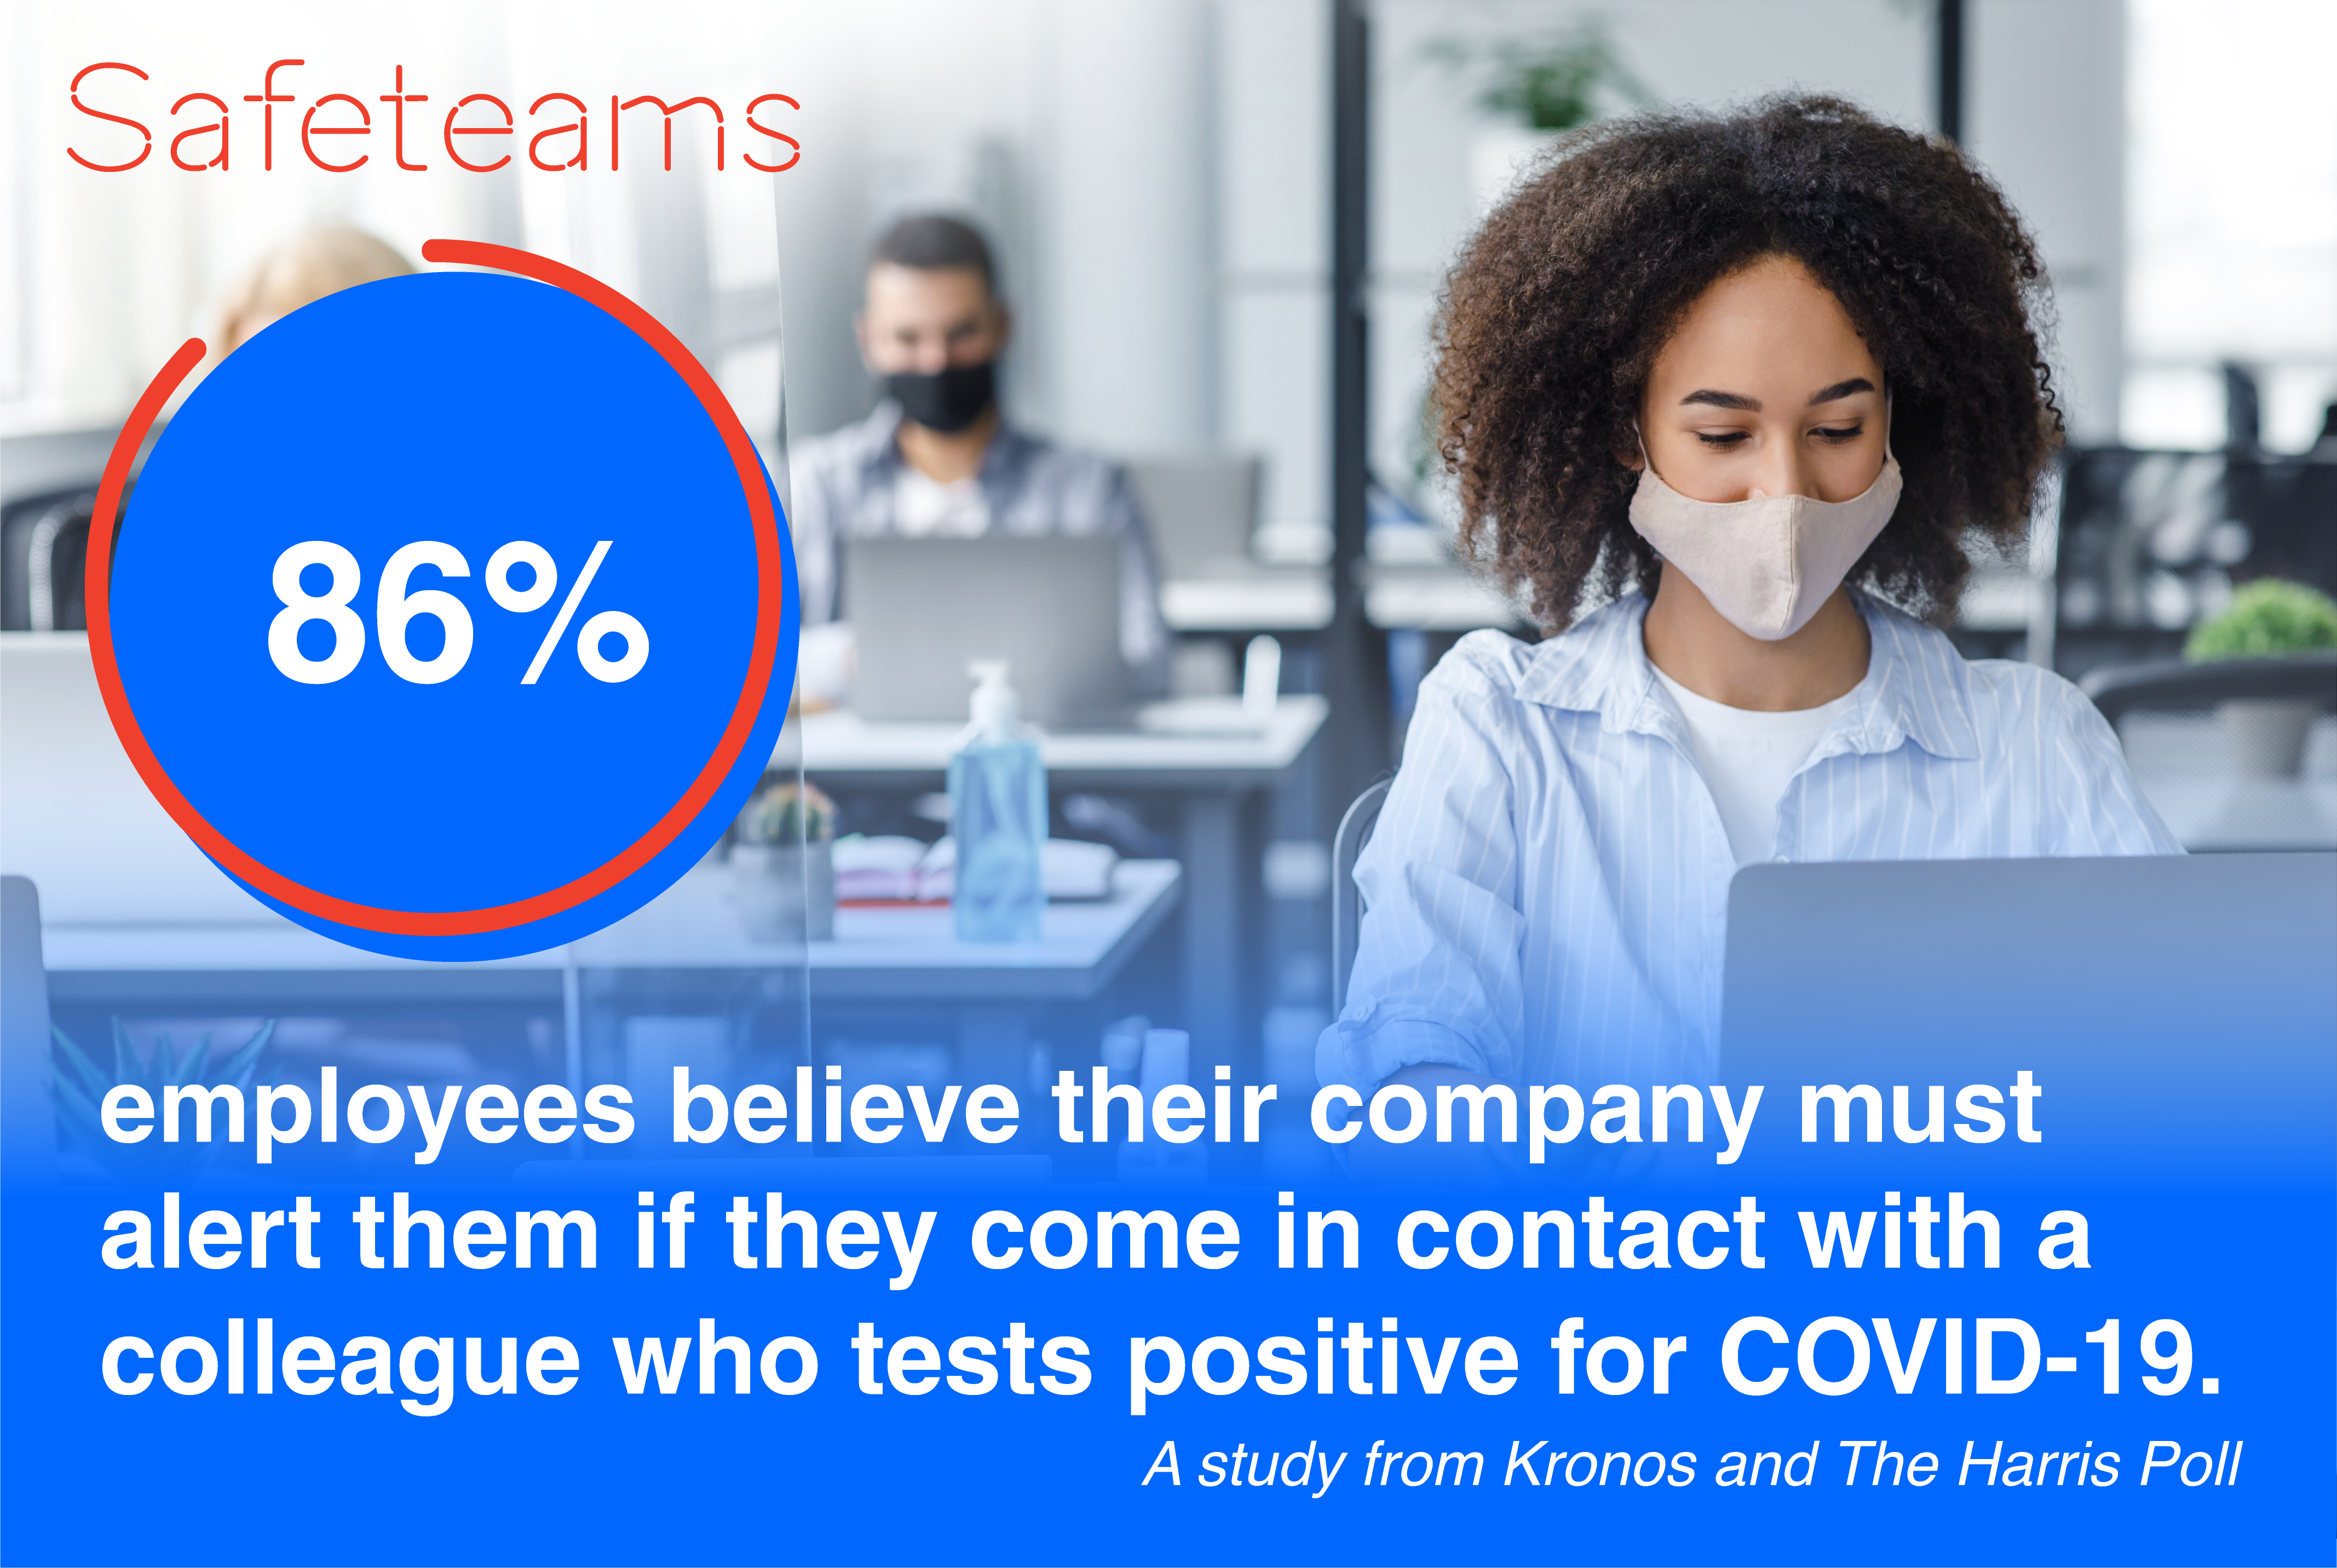 Safeteams_Kronos and Harris Study_86 Percent employees believe company should inform them if they are exposed to a positive covid case at work